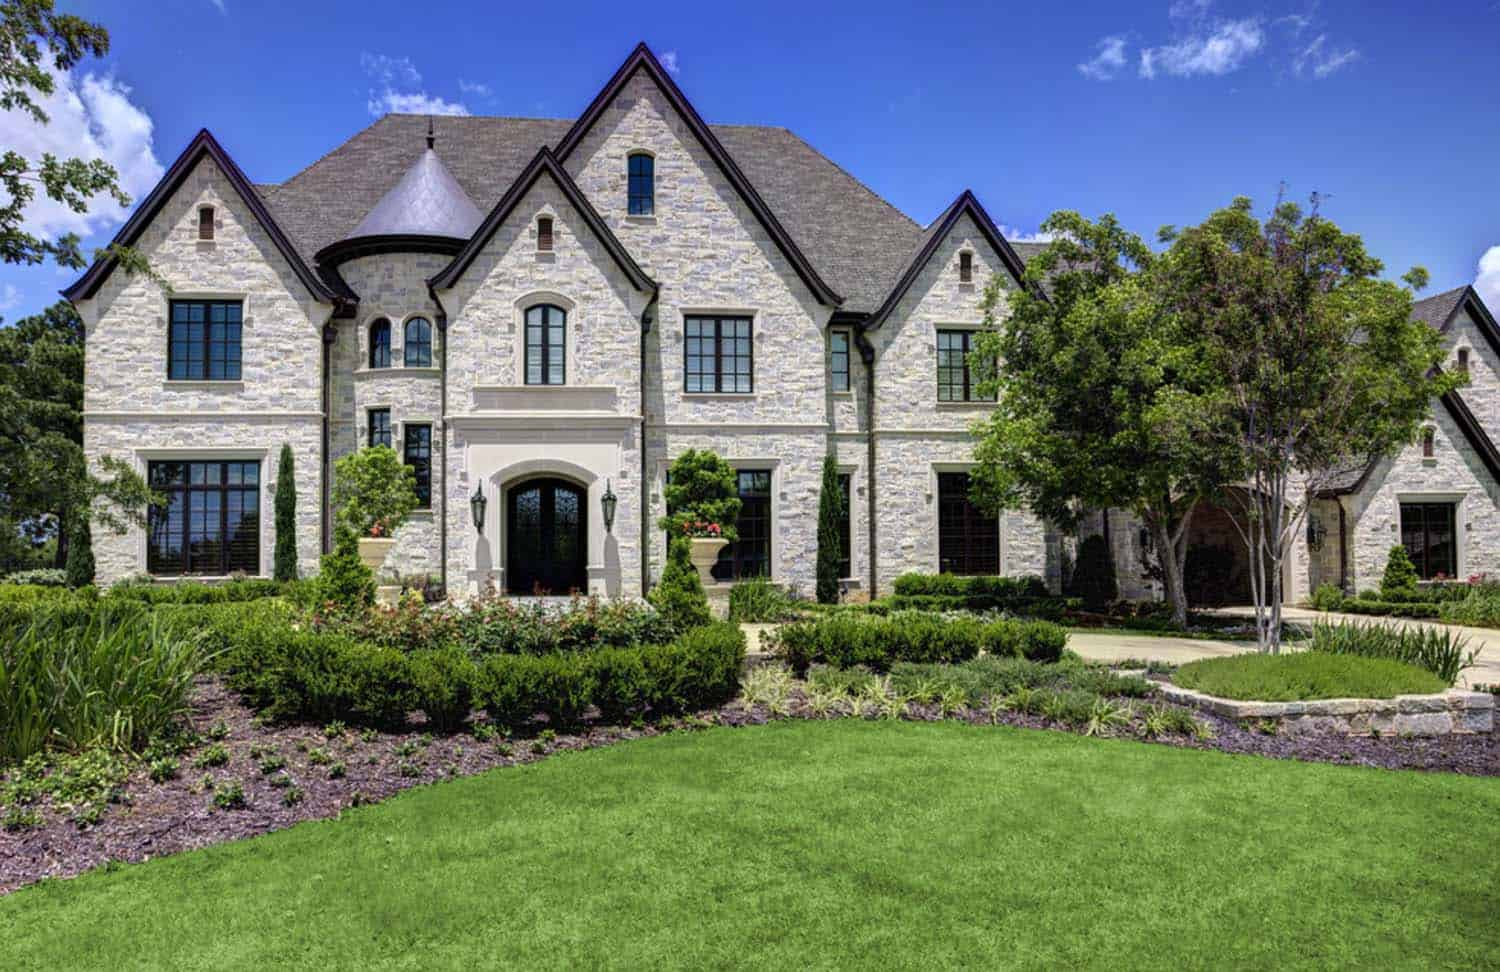 A french chateaux style dream home in southlake texas for French chateau style